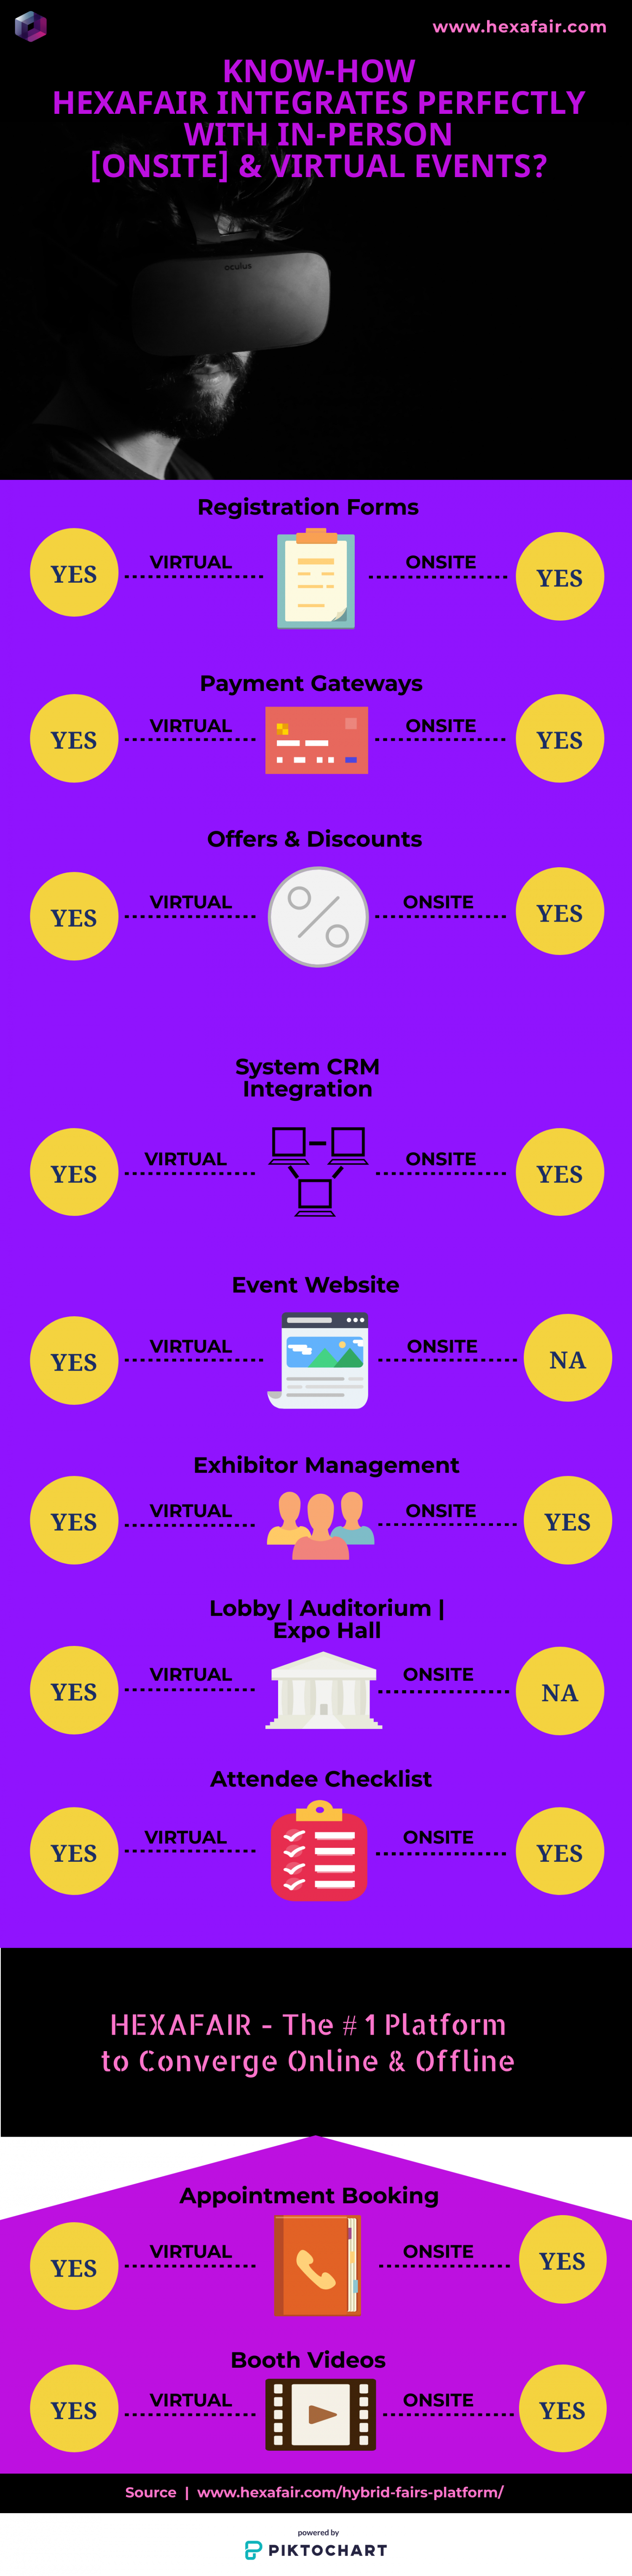 Know-How HexaFair integrates Perfectly With In-Person & Virtual Events Infographic